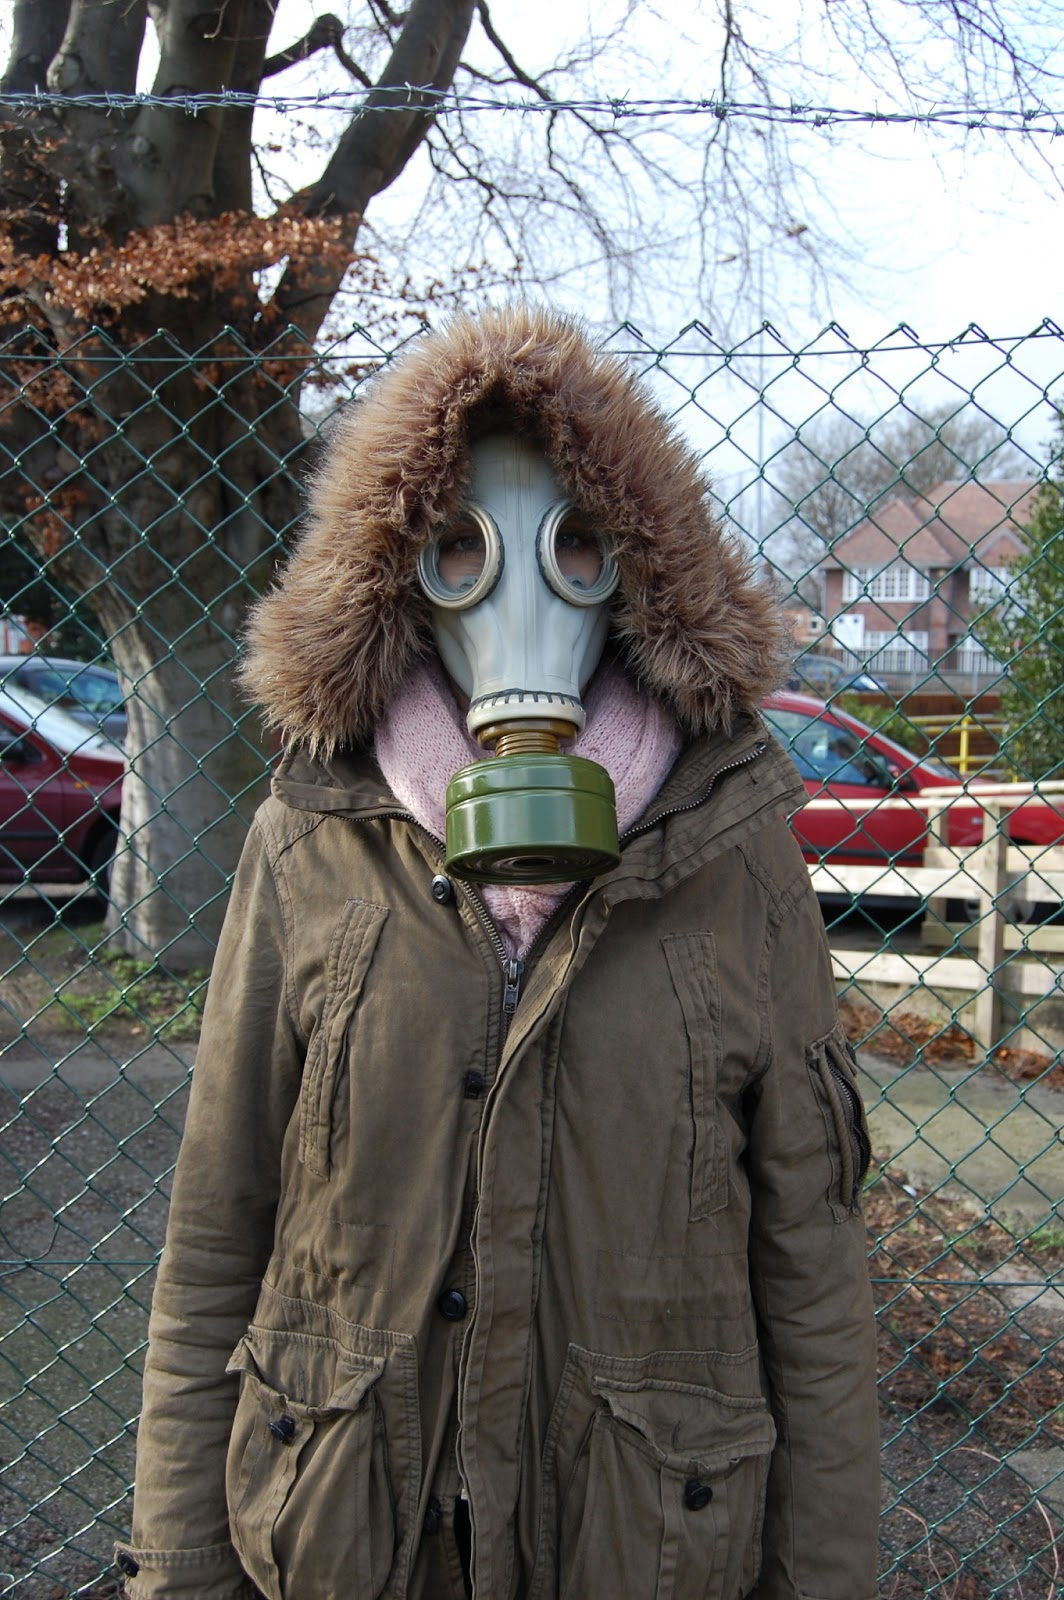 The creative narration of Kirsten Andrew: More gas mask images!